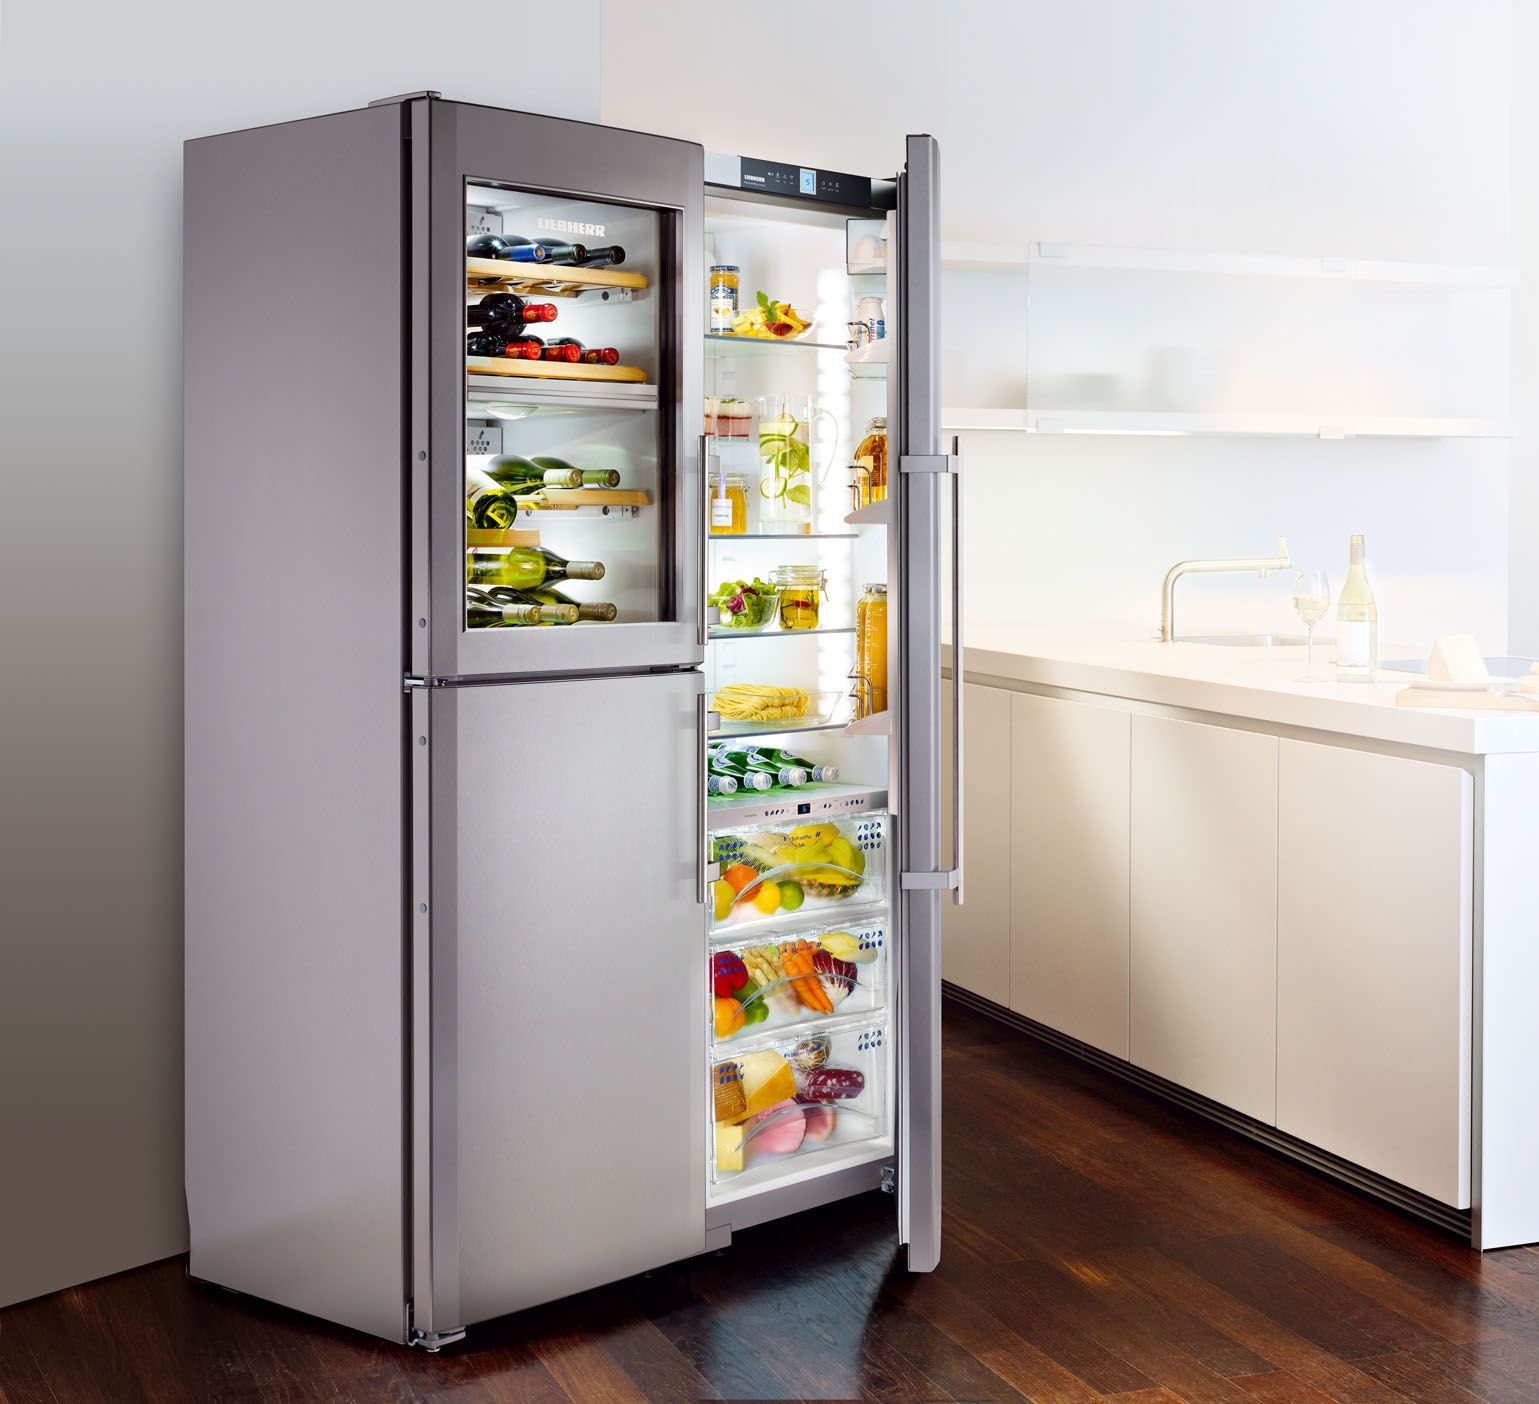 liebherr domestic appliances that i crave how about you